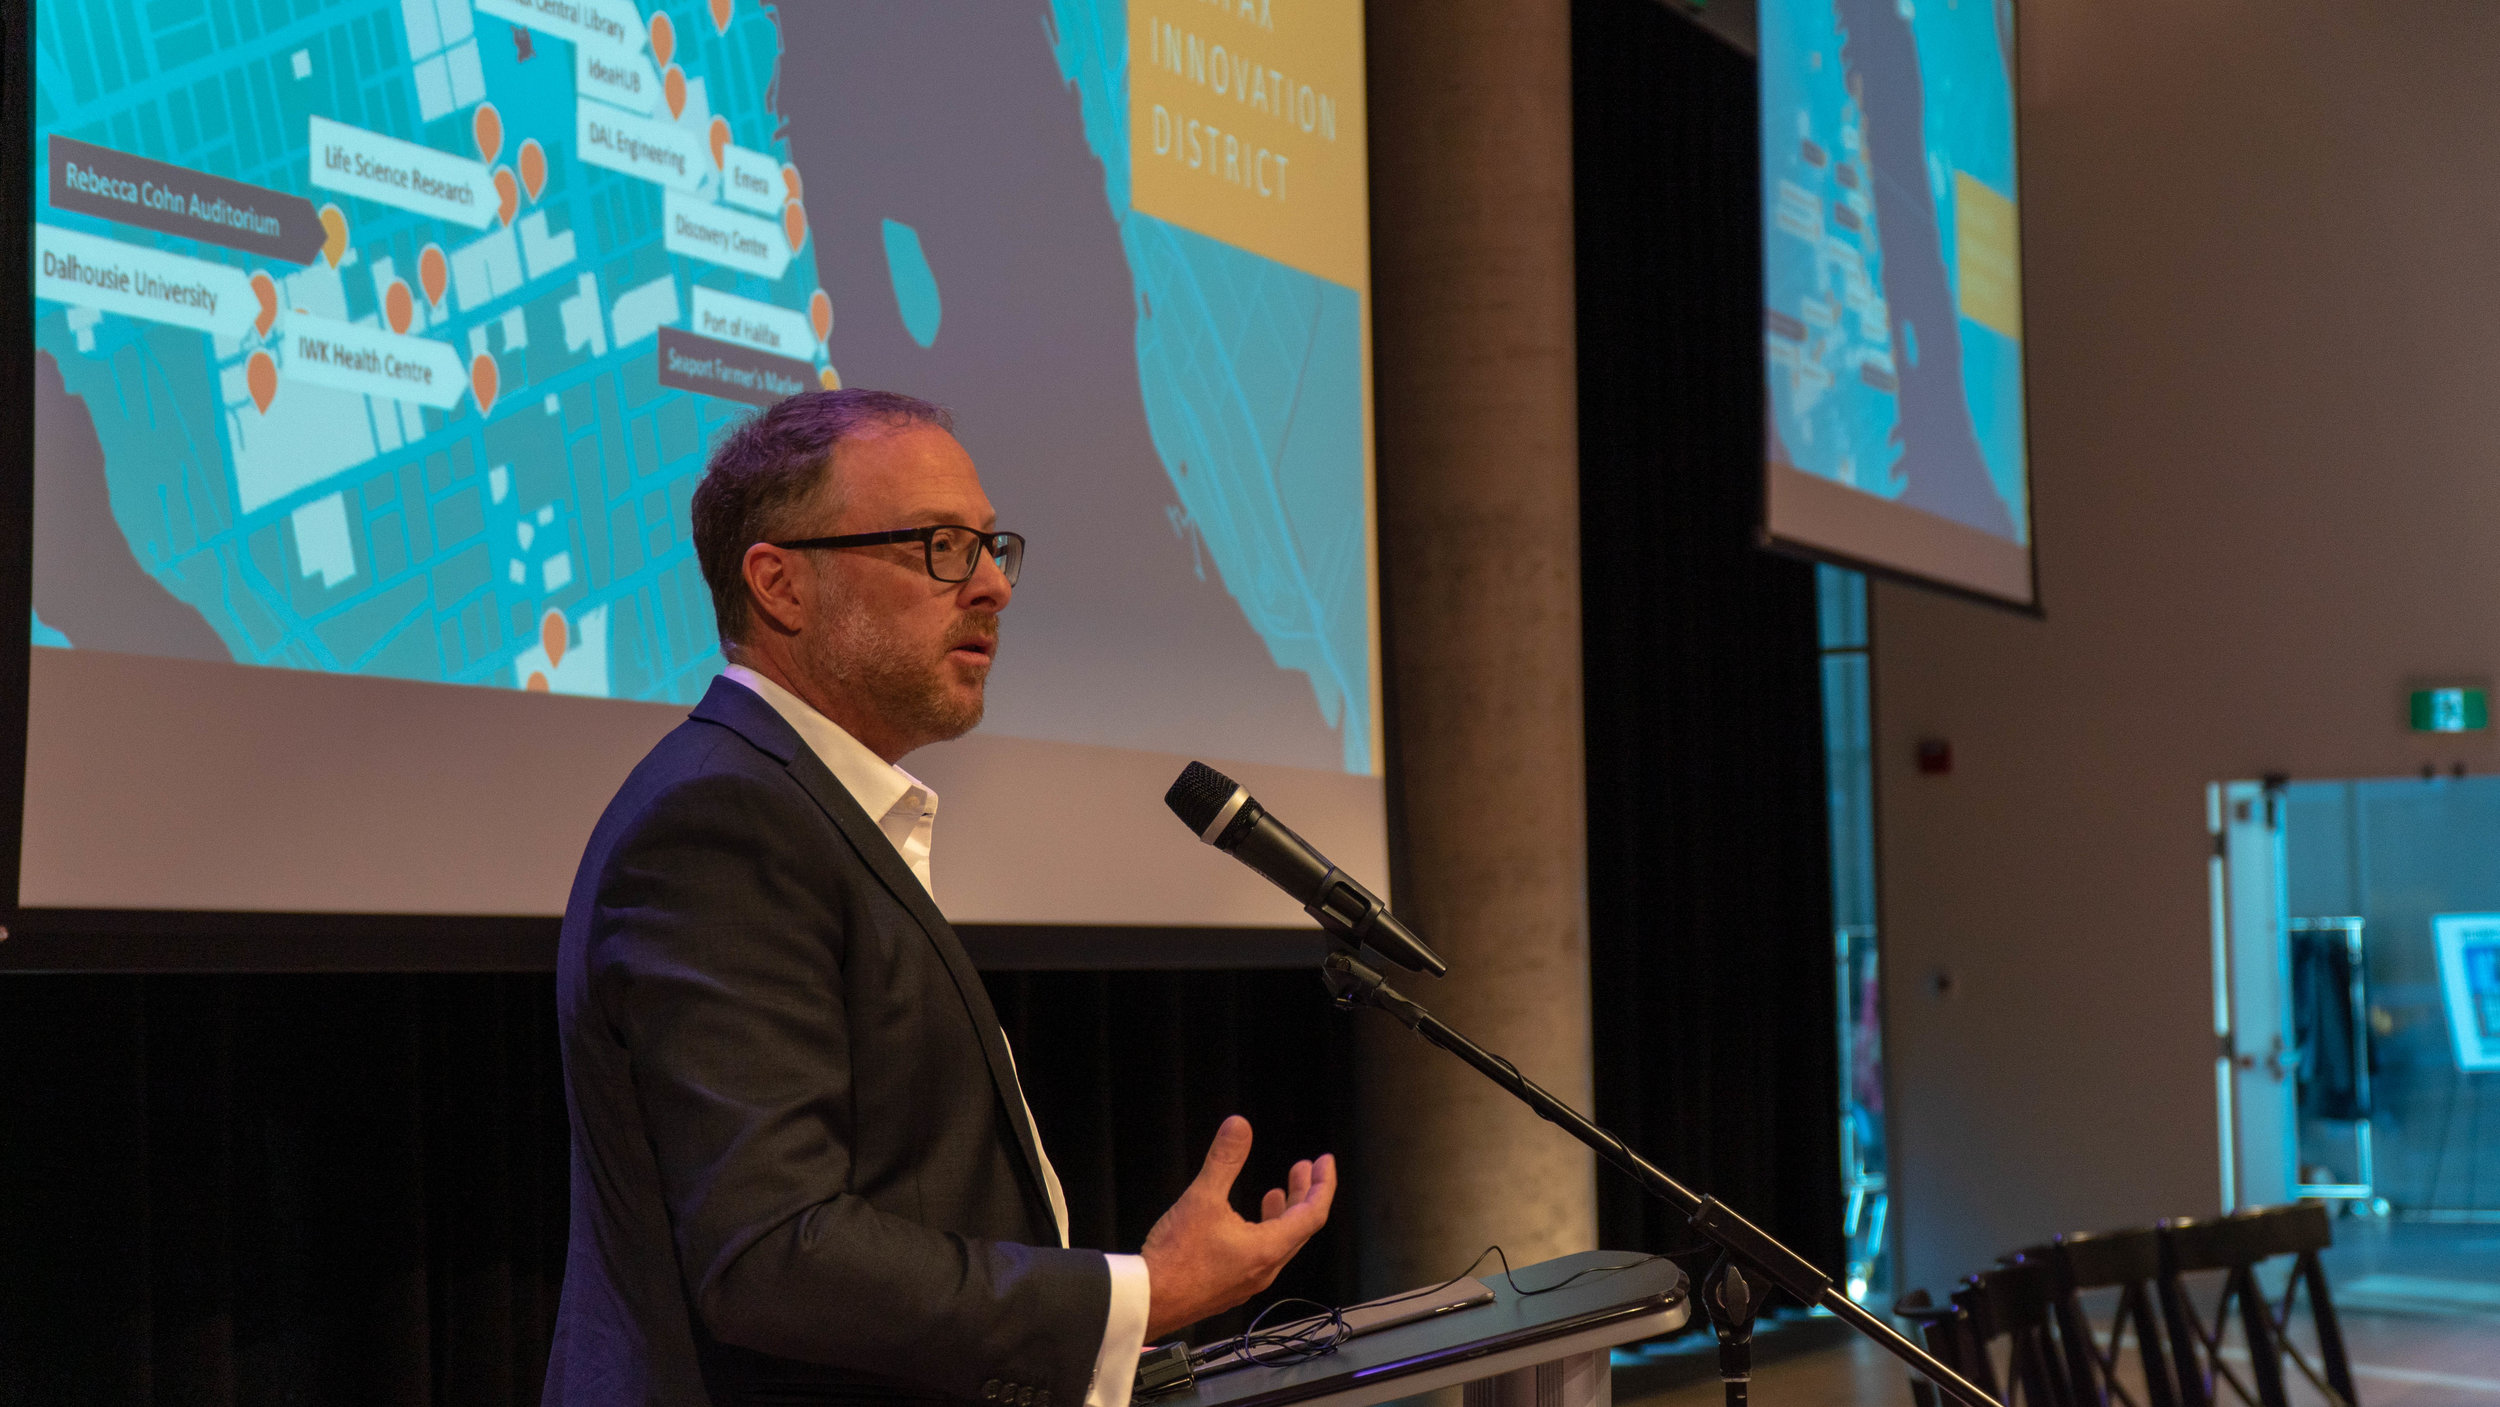 Matt Hebb, Halifax - Density on its own is simply scratching the surface of what's possible, for Matt Hebb, the connectivity between organizations and a shared sense of purpose is what ultimately unlocks a city's full potential.